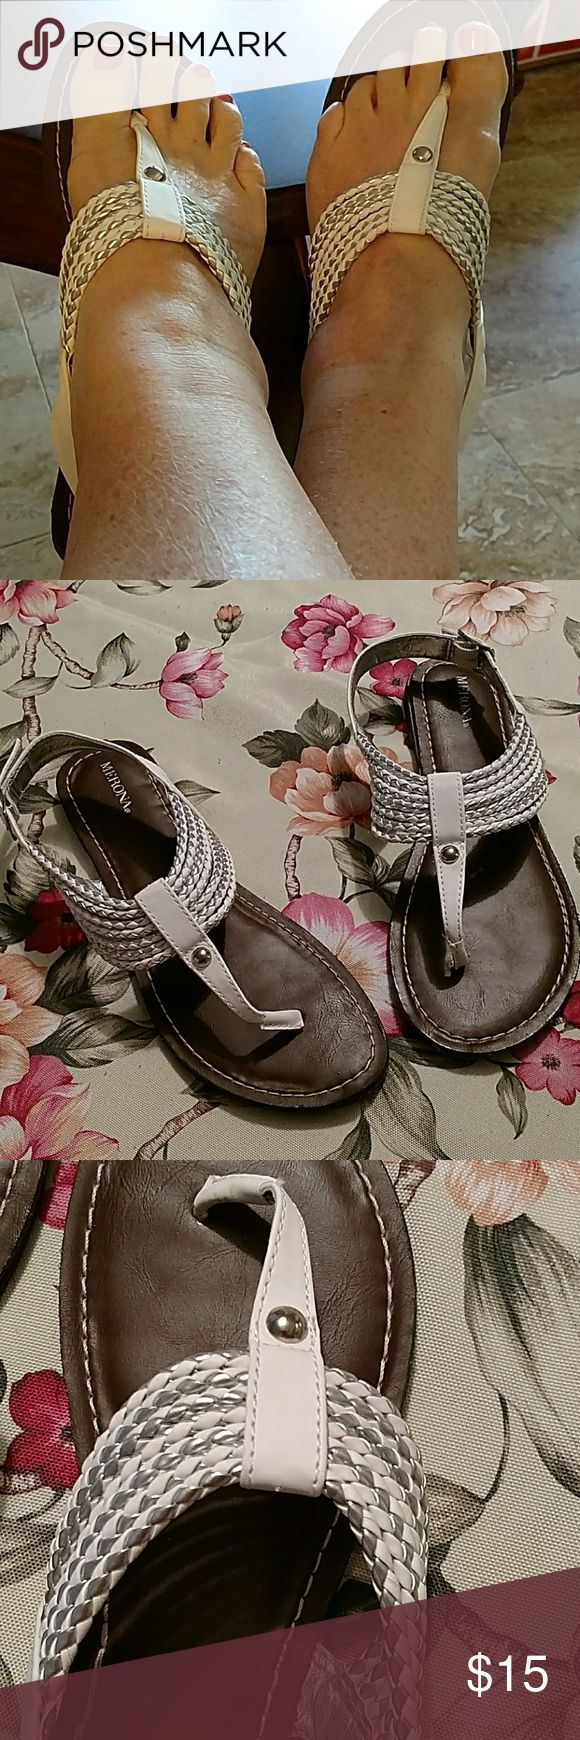 Merona white and silver flat sandals, size 9 Super cute thong style sandals with adjustable back strap. Seven leather straps of white and silver leather. NEVER WORN! Merona Shoes Sandals